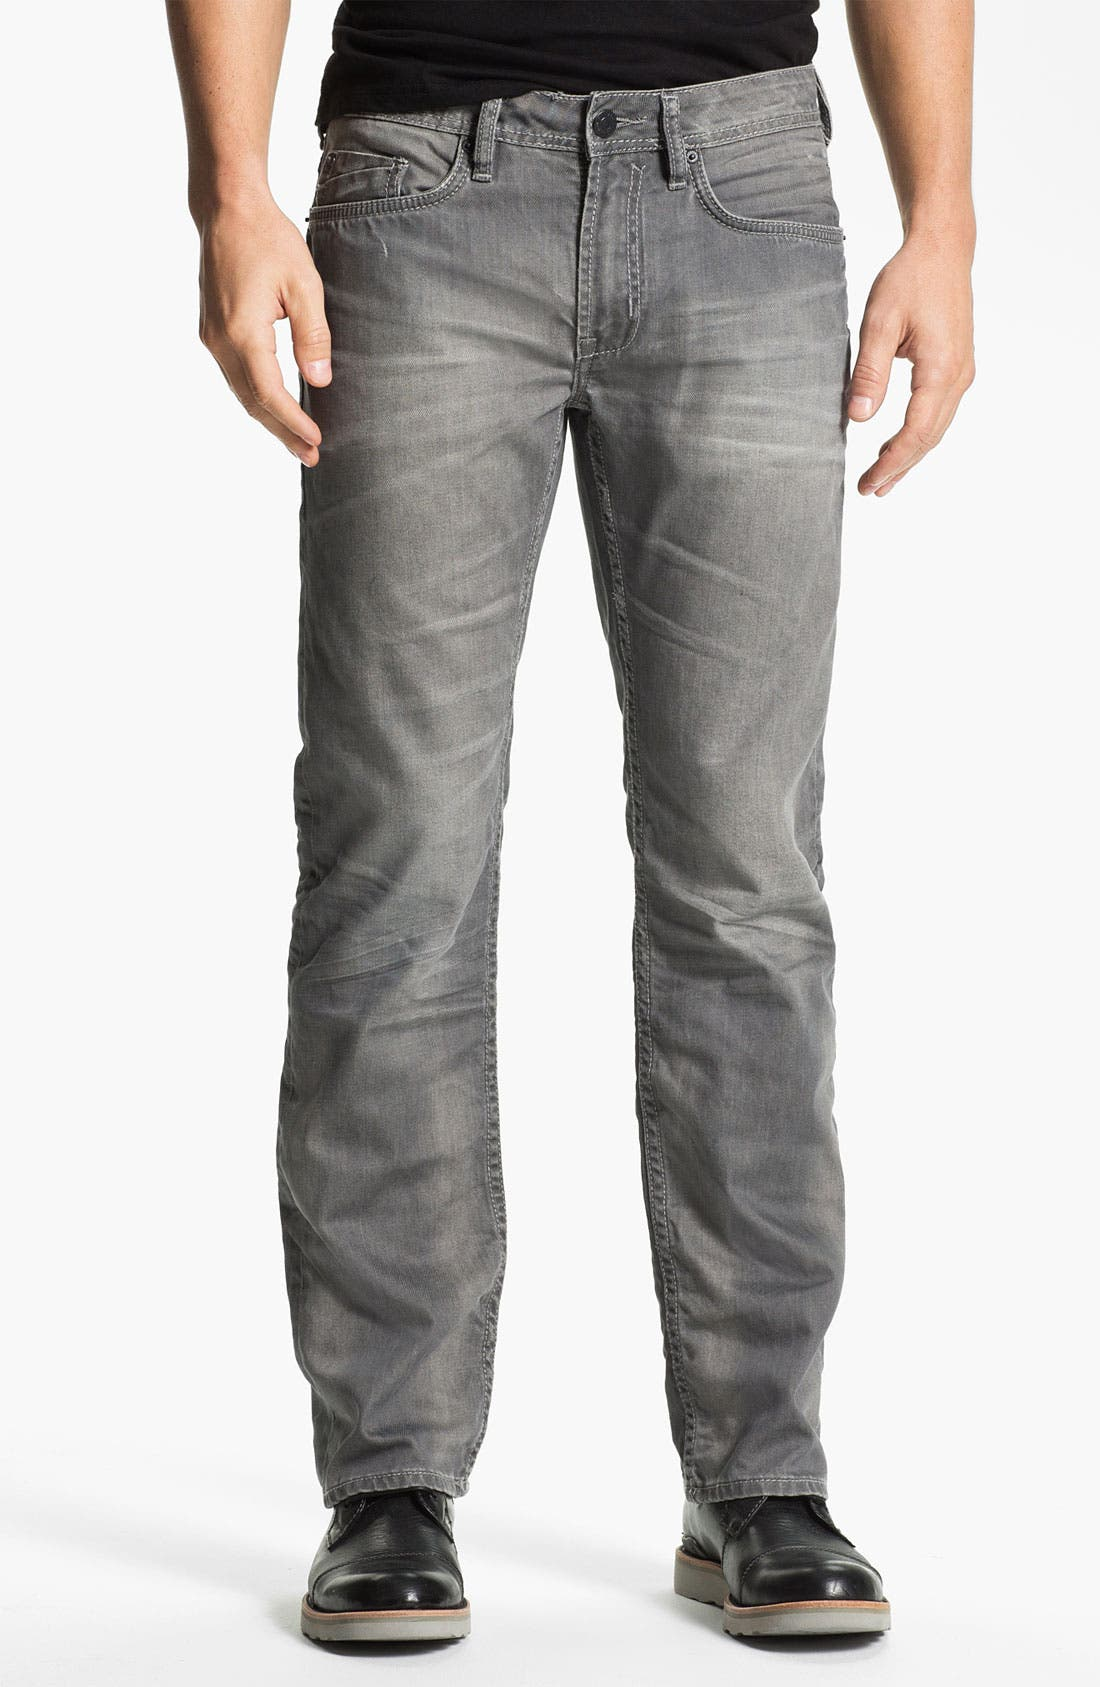 Main Image - Buffalo Jeans 'Driven' Straight Leg Jeans (Aged/Torn)